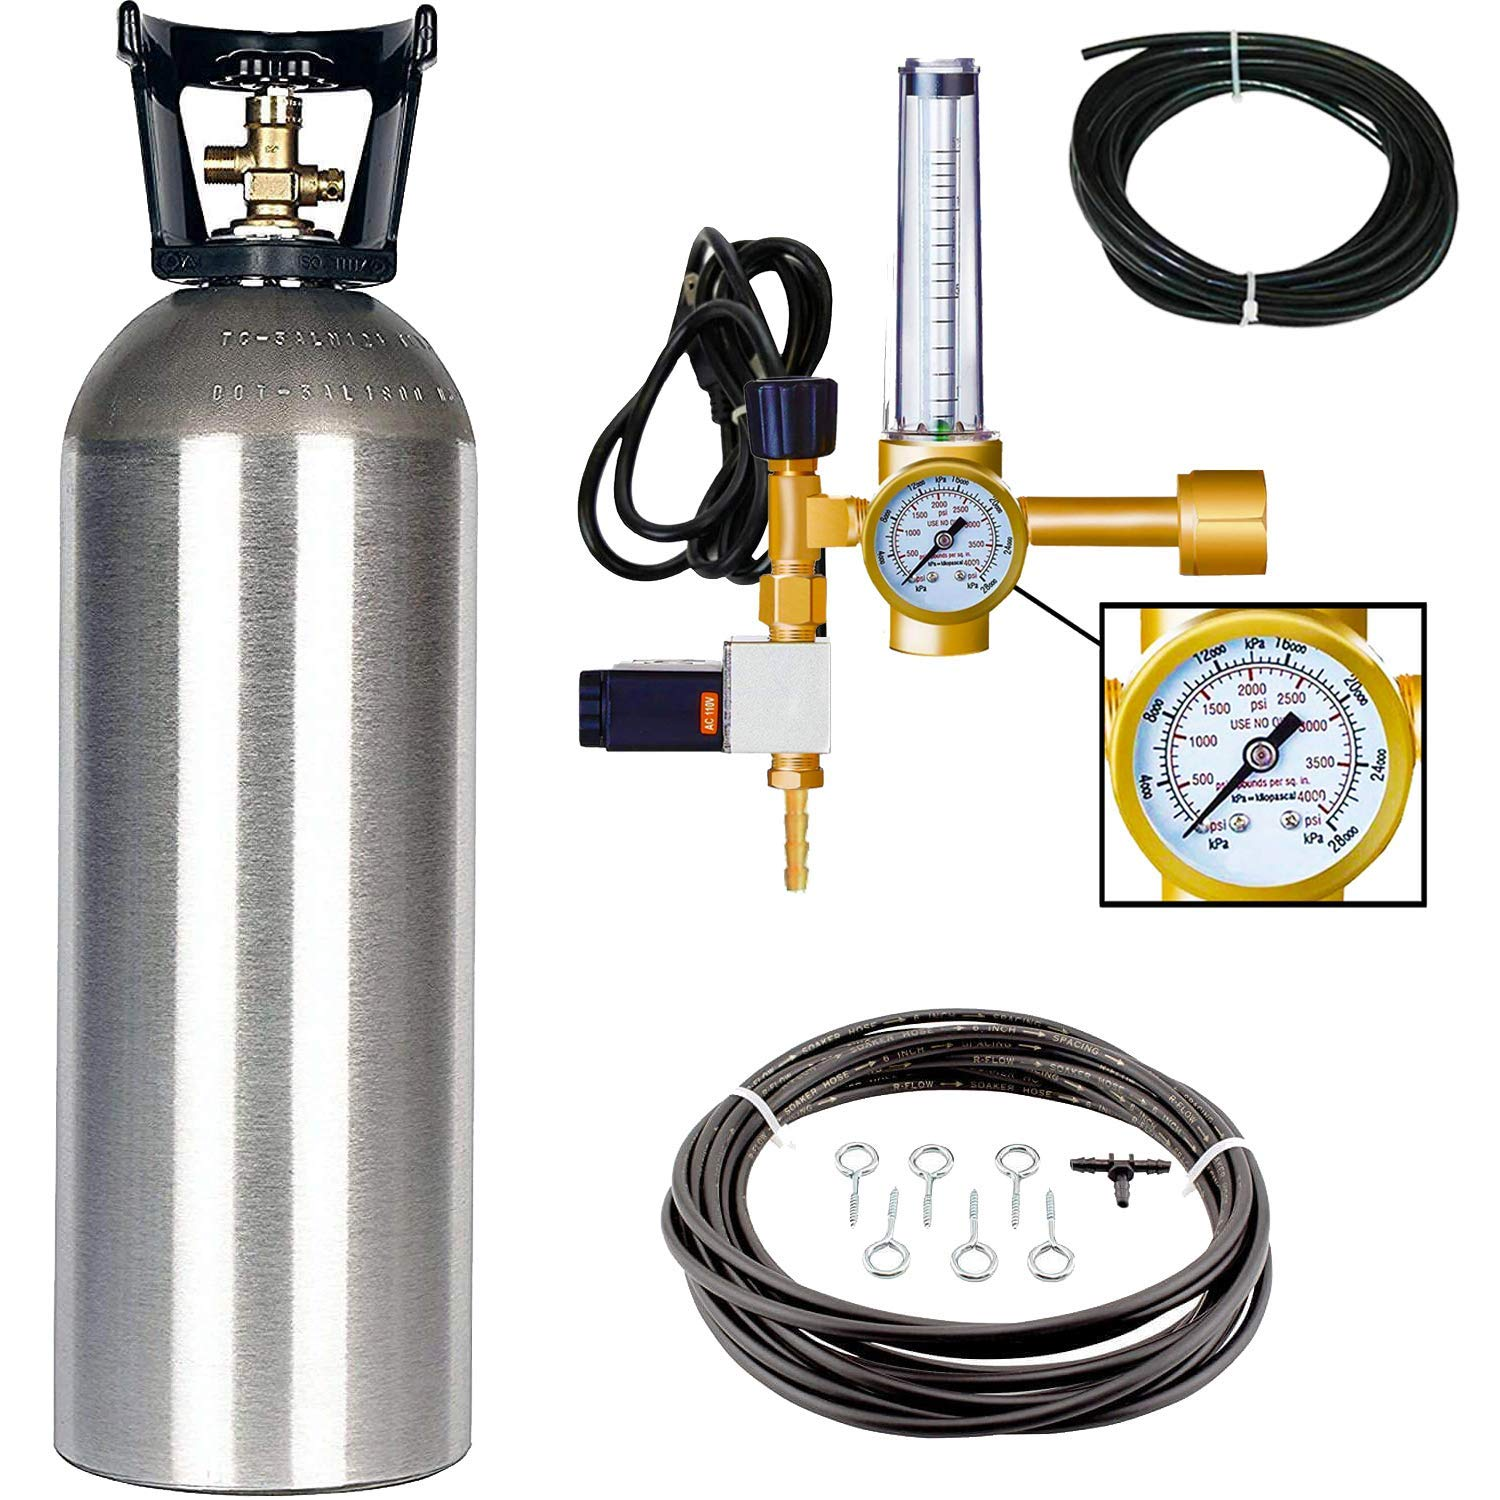 Grow Crew Hydroponic CO2 Enrichment Kit Includes 20 lb Aluminum CO2 Tank, Carbon Accelerator CO2 Regulator, and Active Air Rain System to Shower Your Plants with CO2